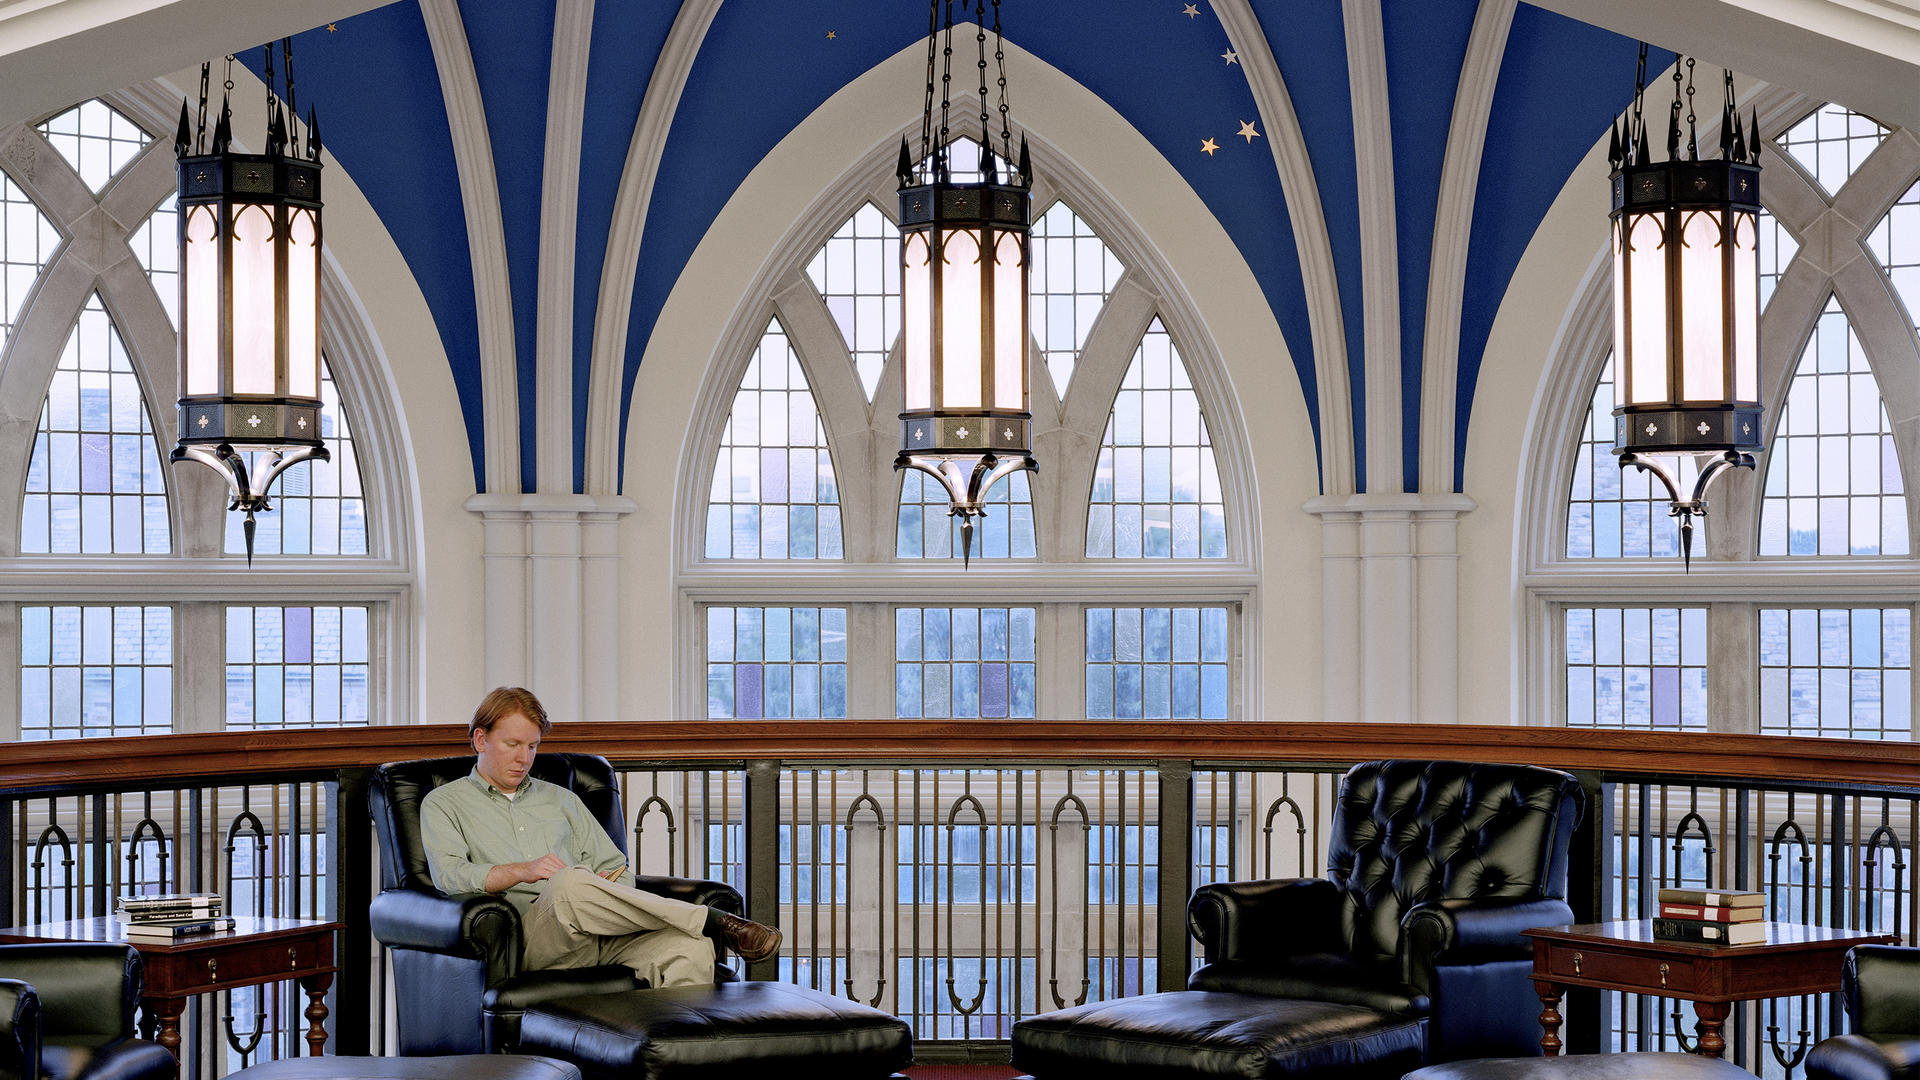 A student lounges in a blue armchair below the blue apse and three lanterns